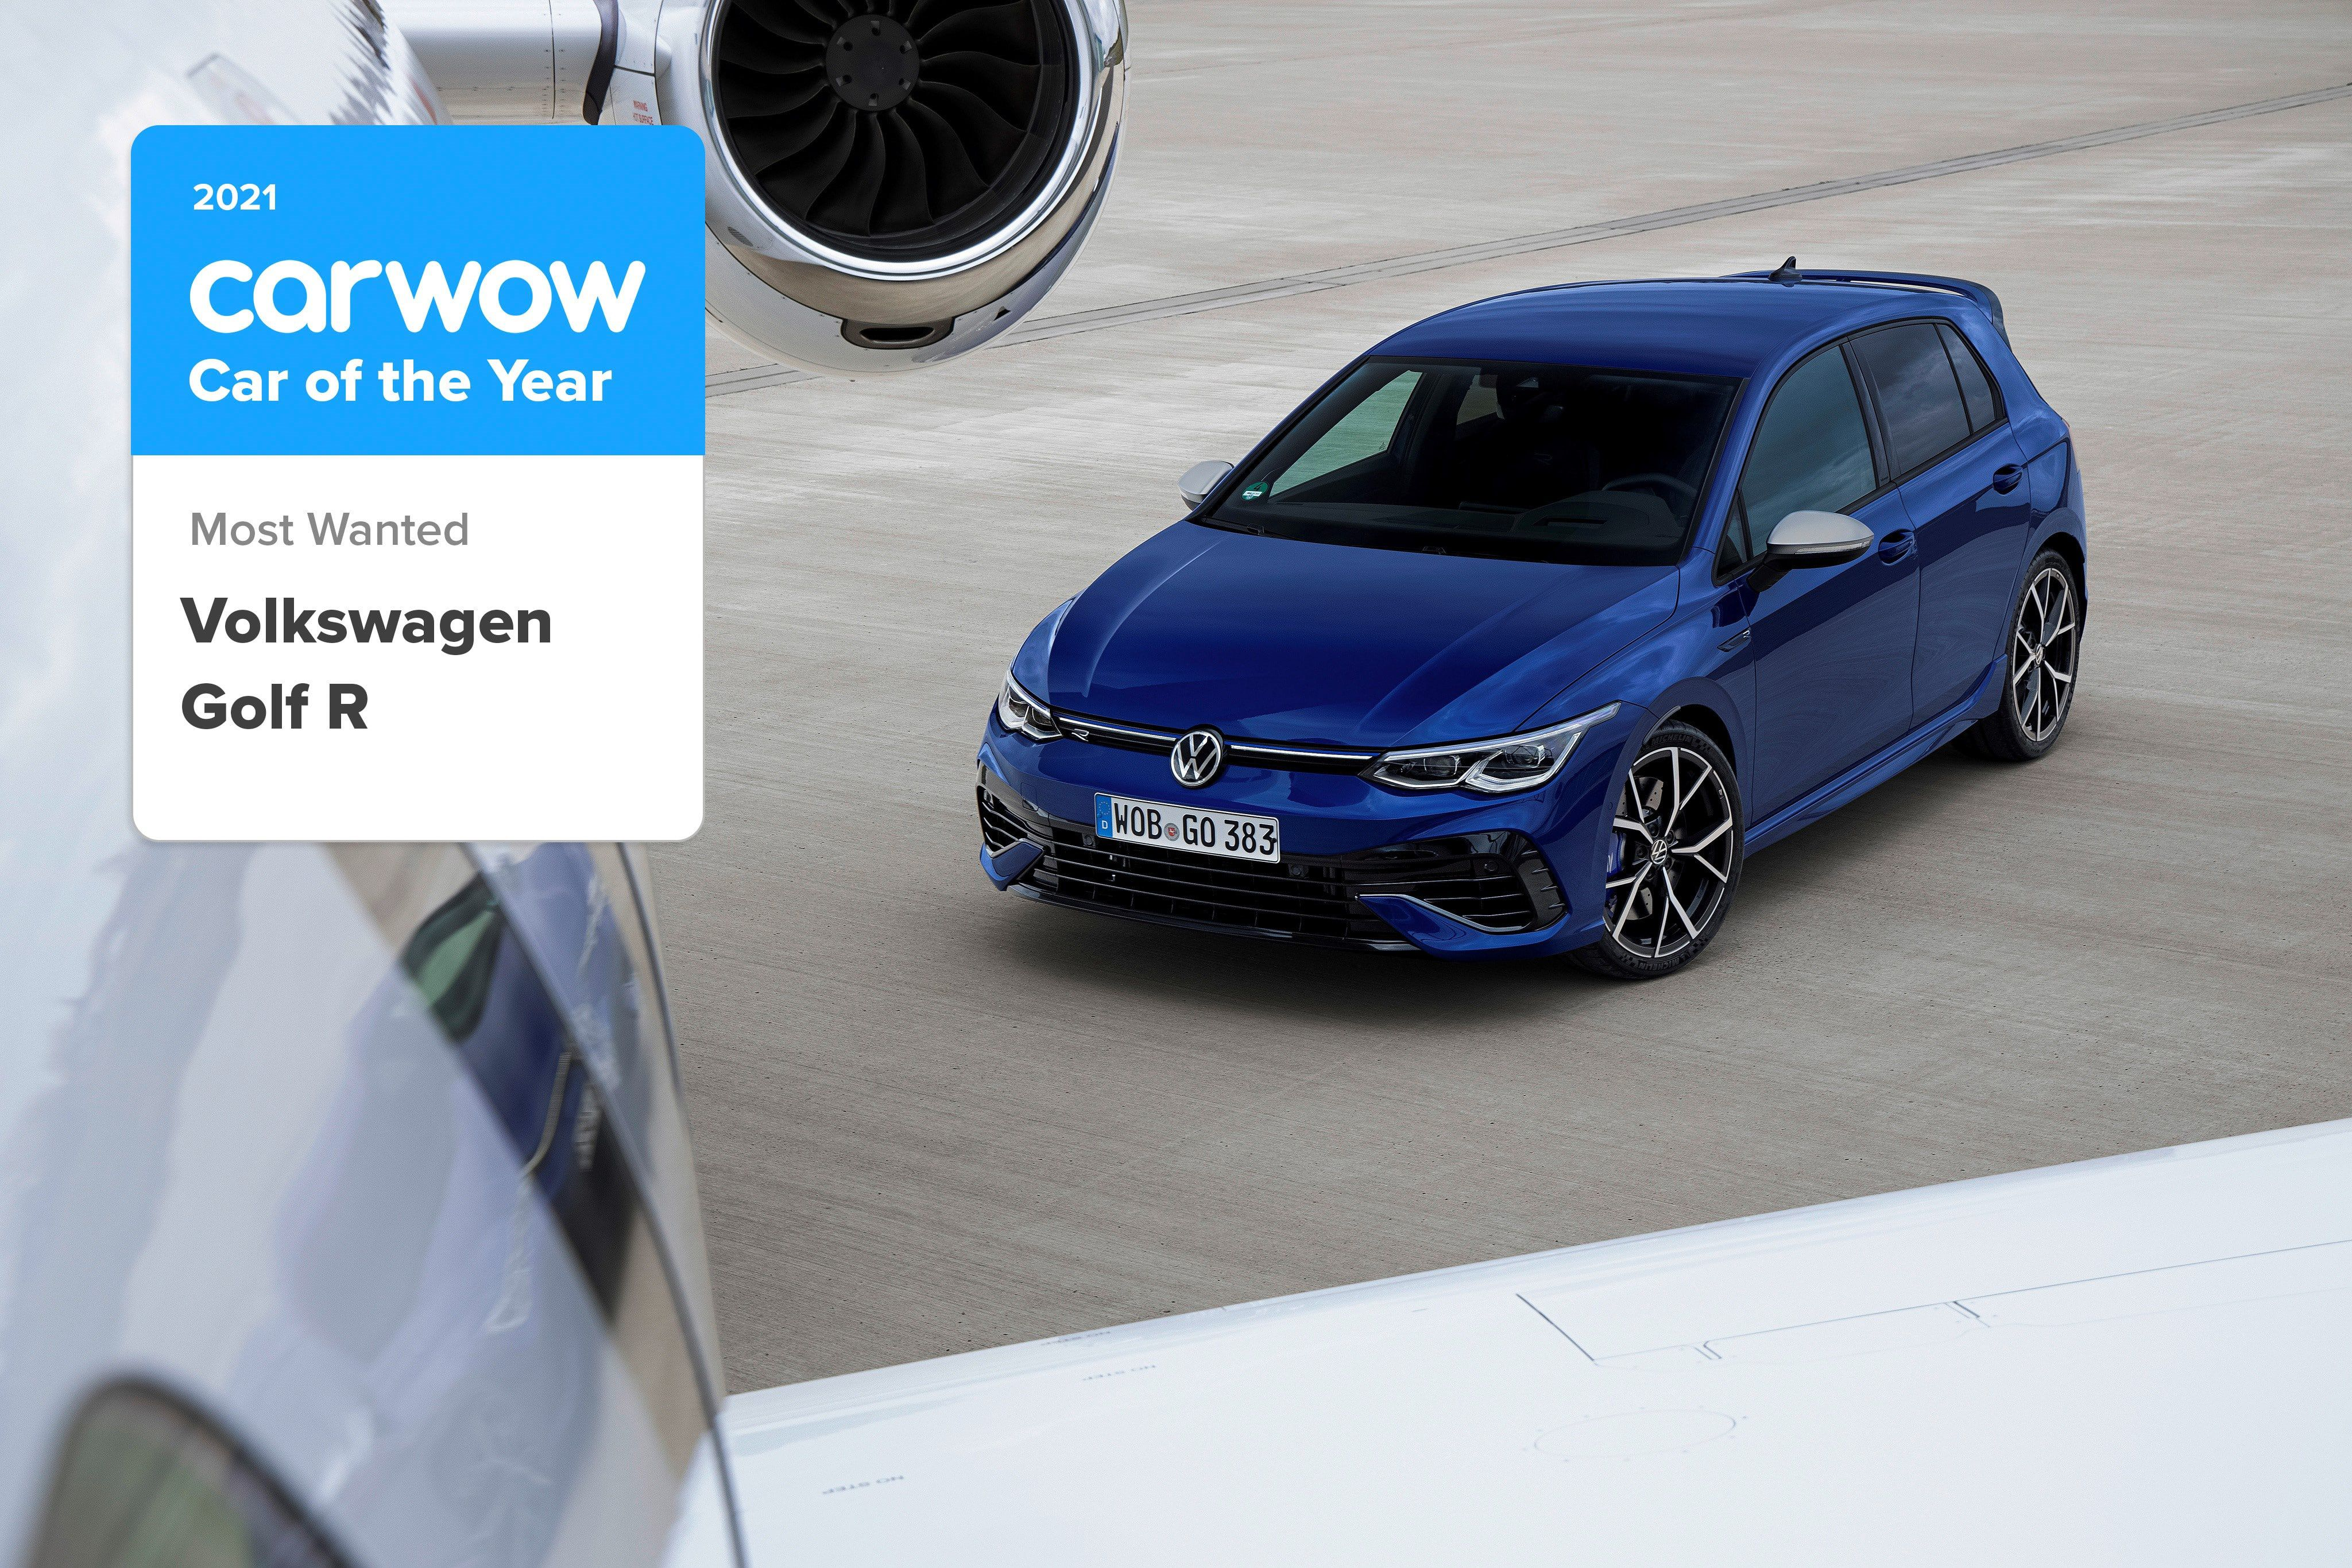 car wow most wanted volkswagen golf r